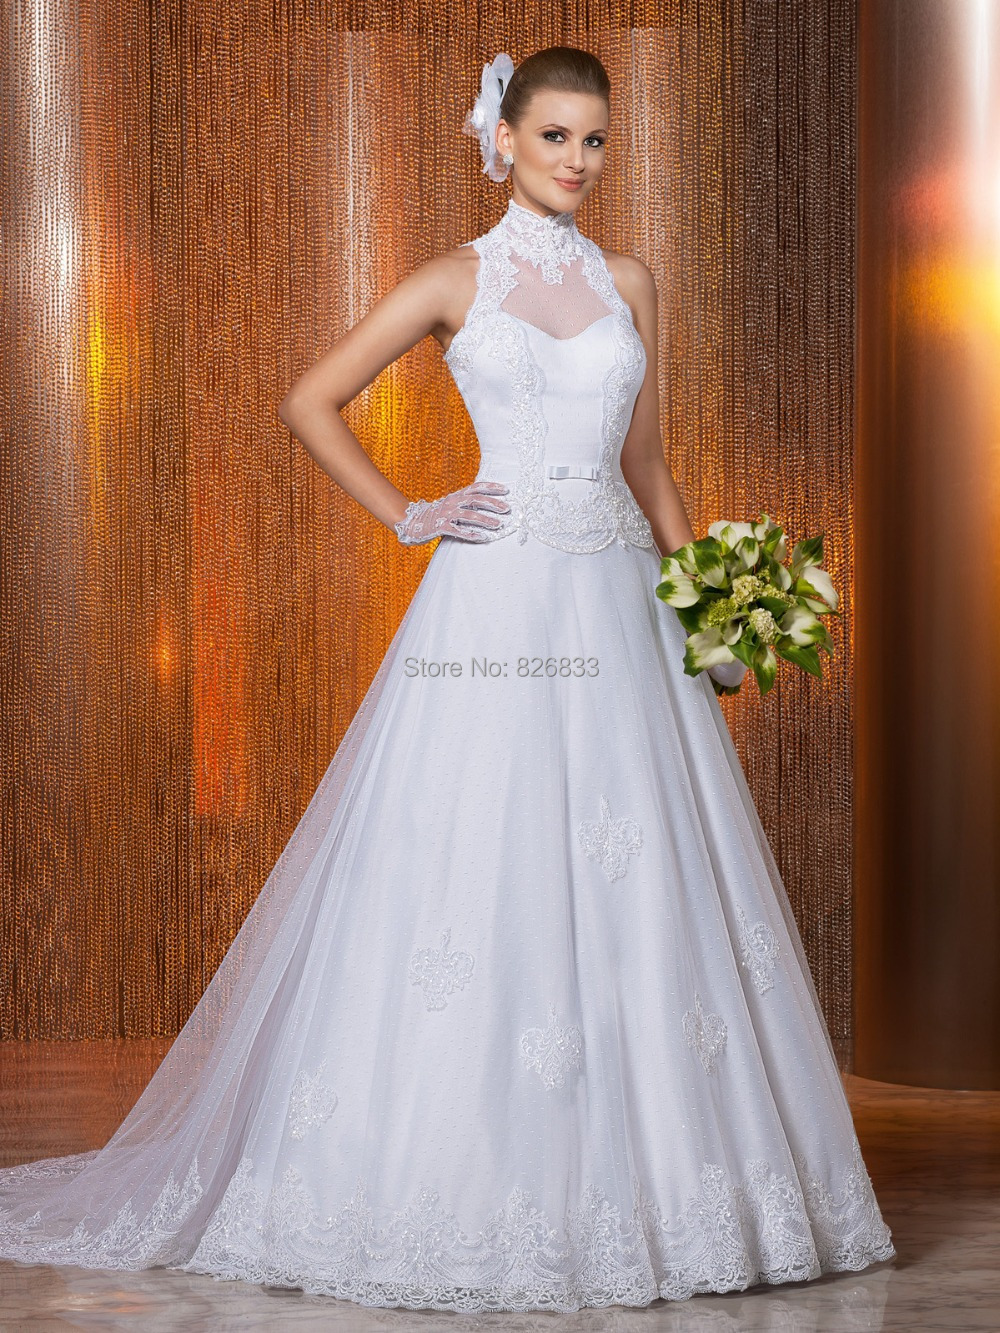 Royal princess style white lace and tulle wedding dress for Princess cut wedding dresses